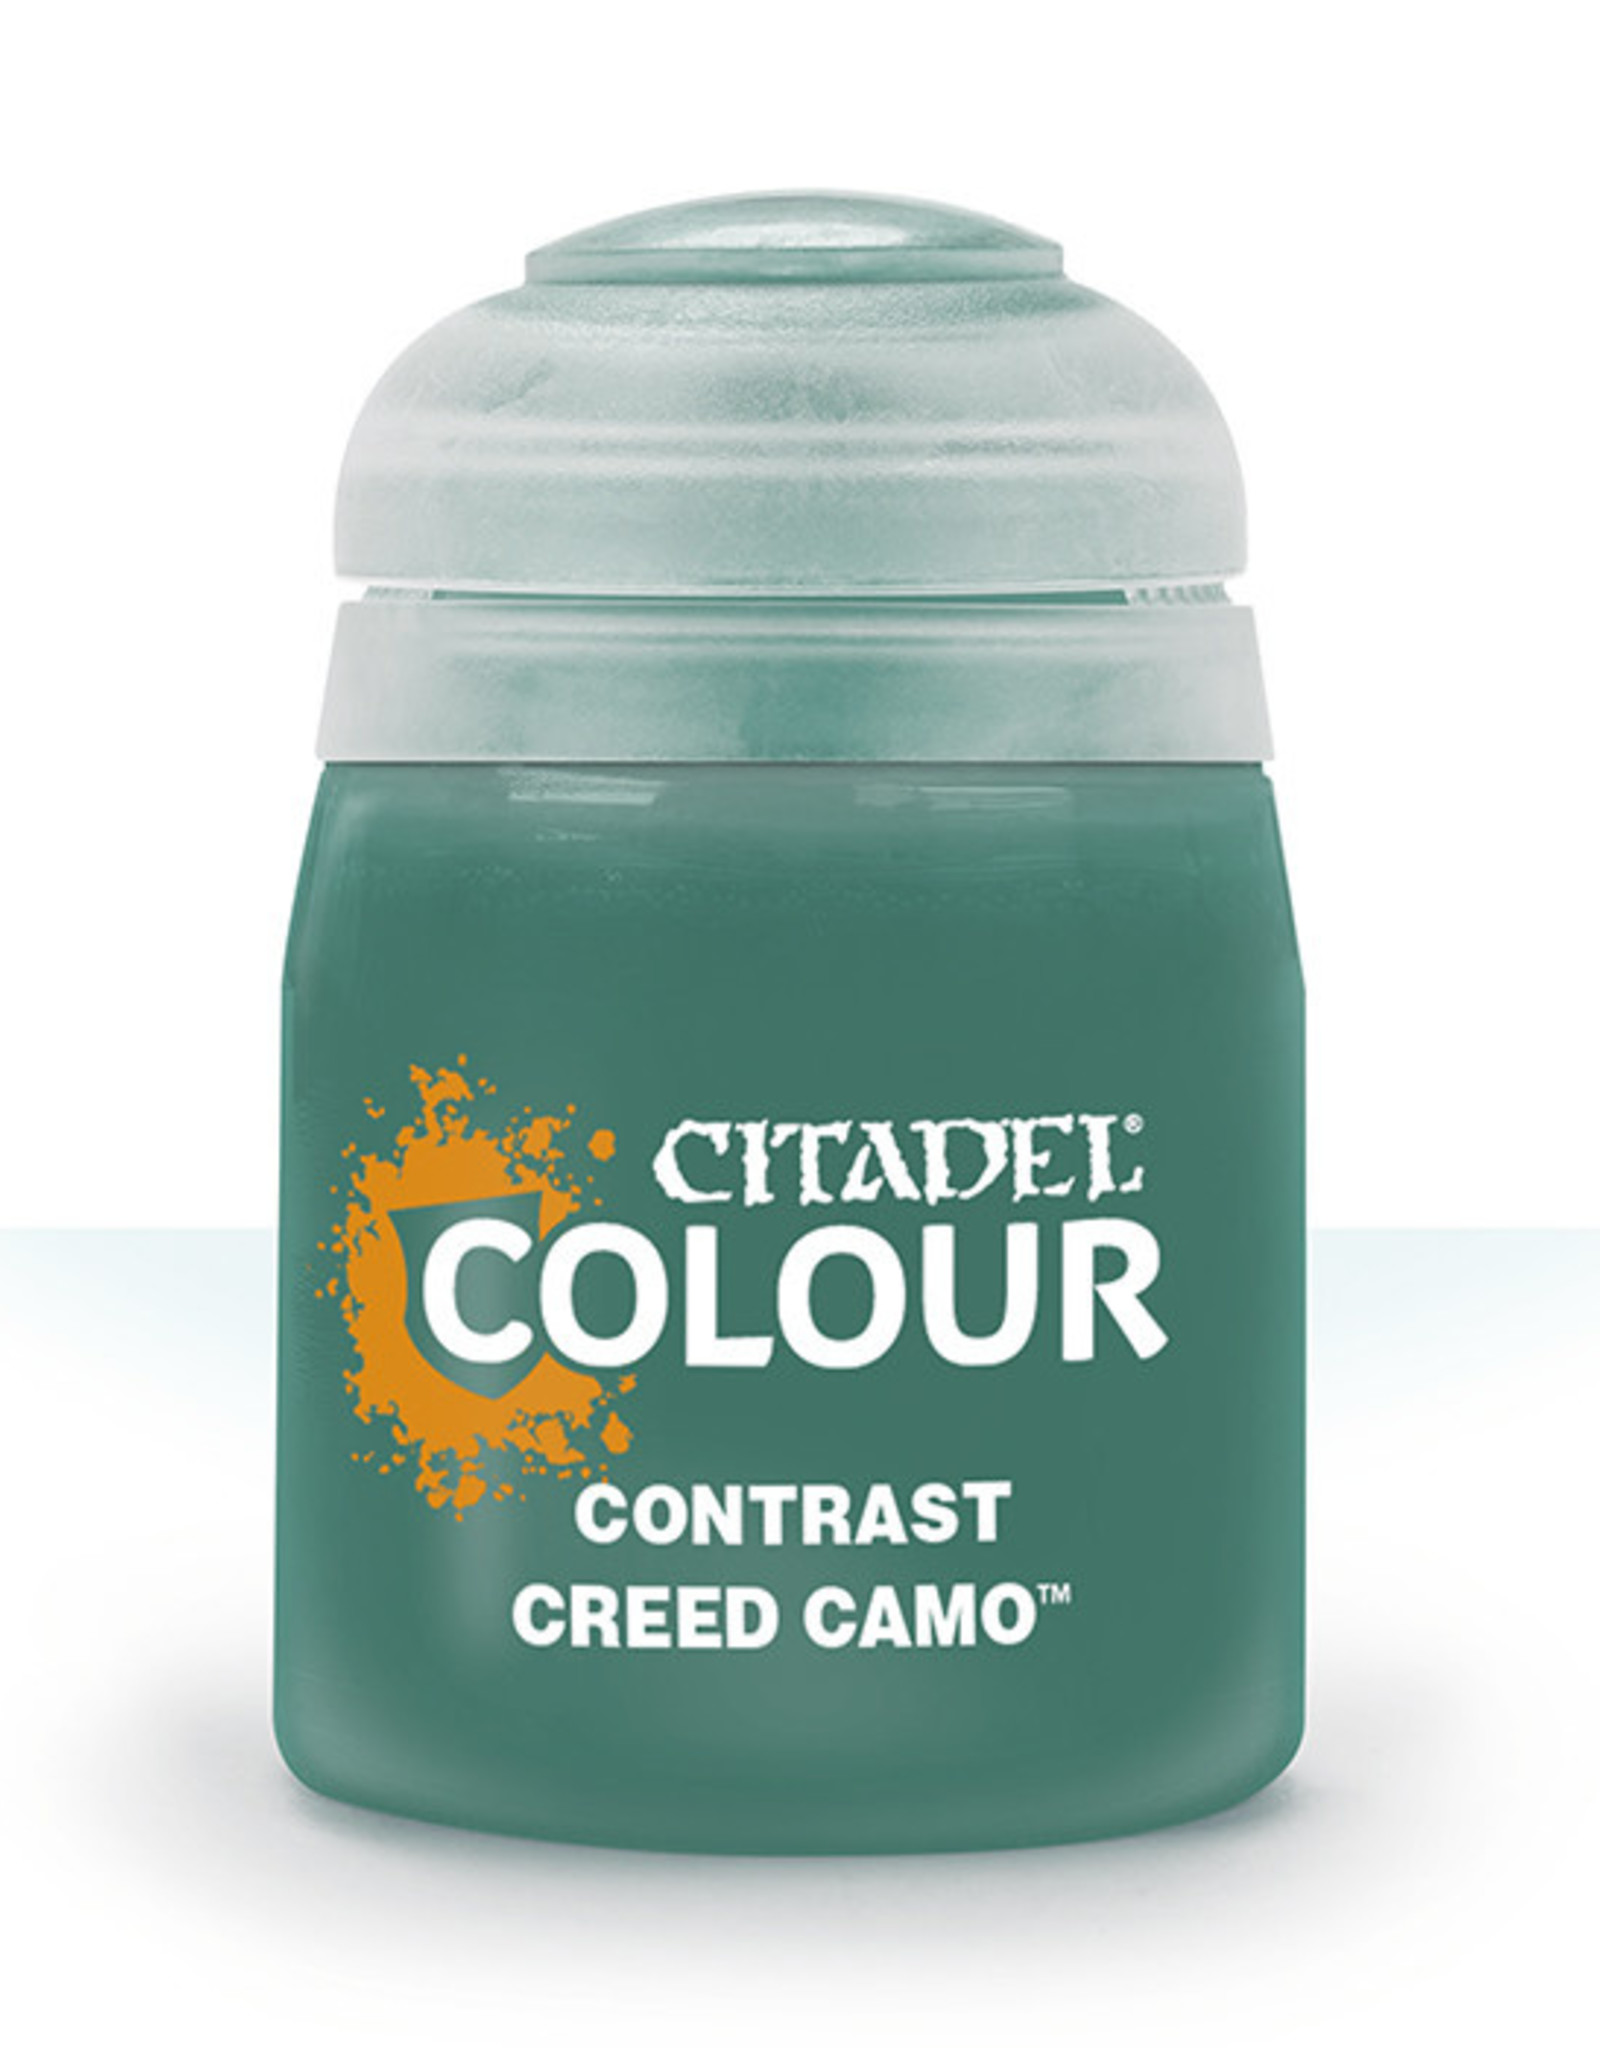 Citadel Citadel Colour: Contrast - Creed Camo